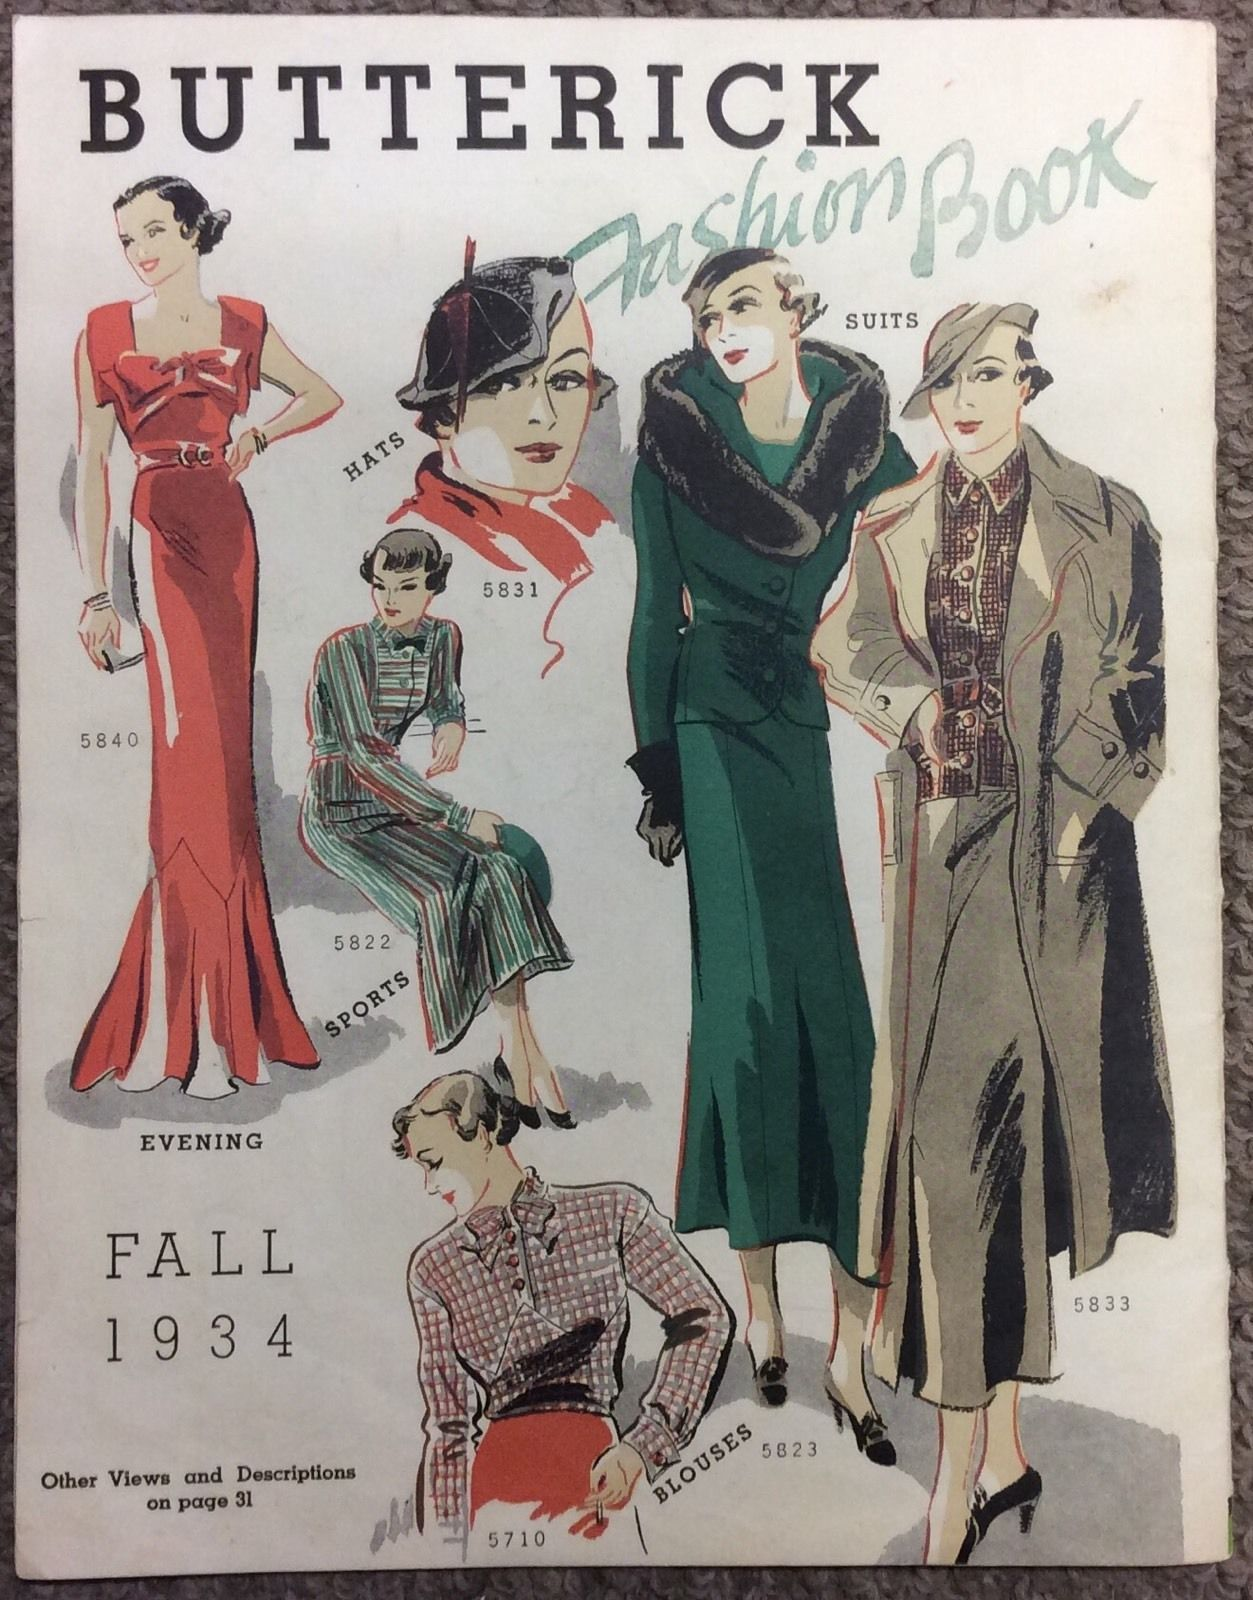 Winter Fall Fashion Butterick 5831 Hat 5823 And 5833 In Book 1934